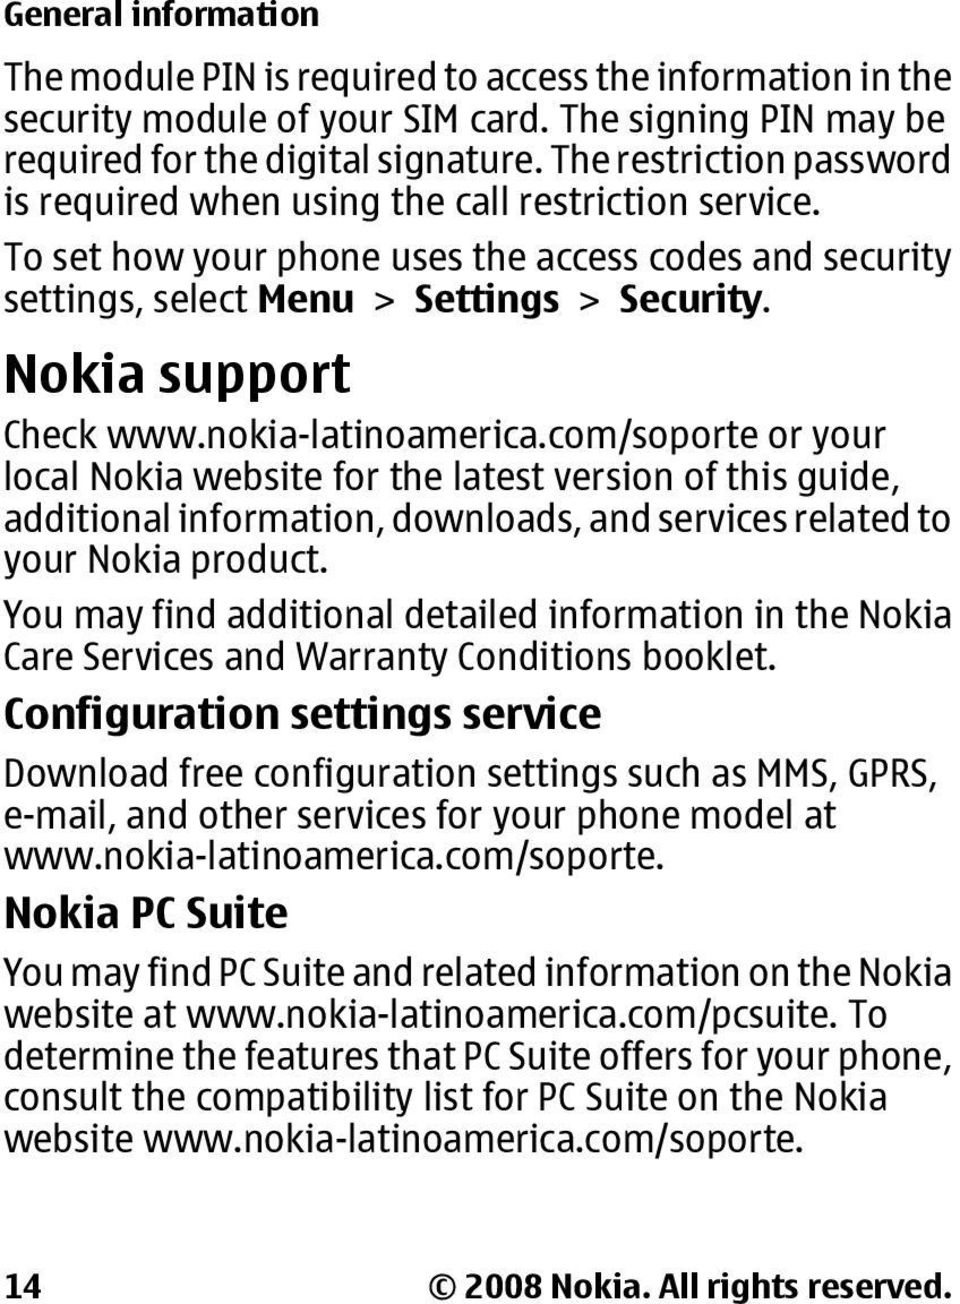 Nokia support Check www.nokia-latinoamerica.com/soporte or your local Nokia website for the latest version of this guide, additional information, downloads, and services related to your Nokia product.